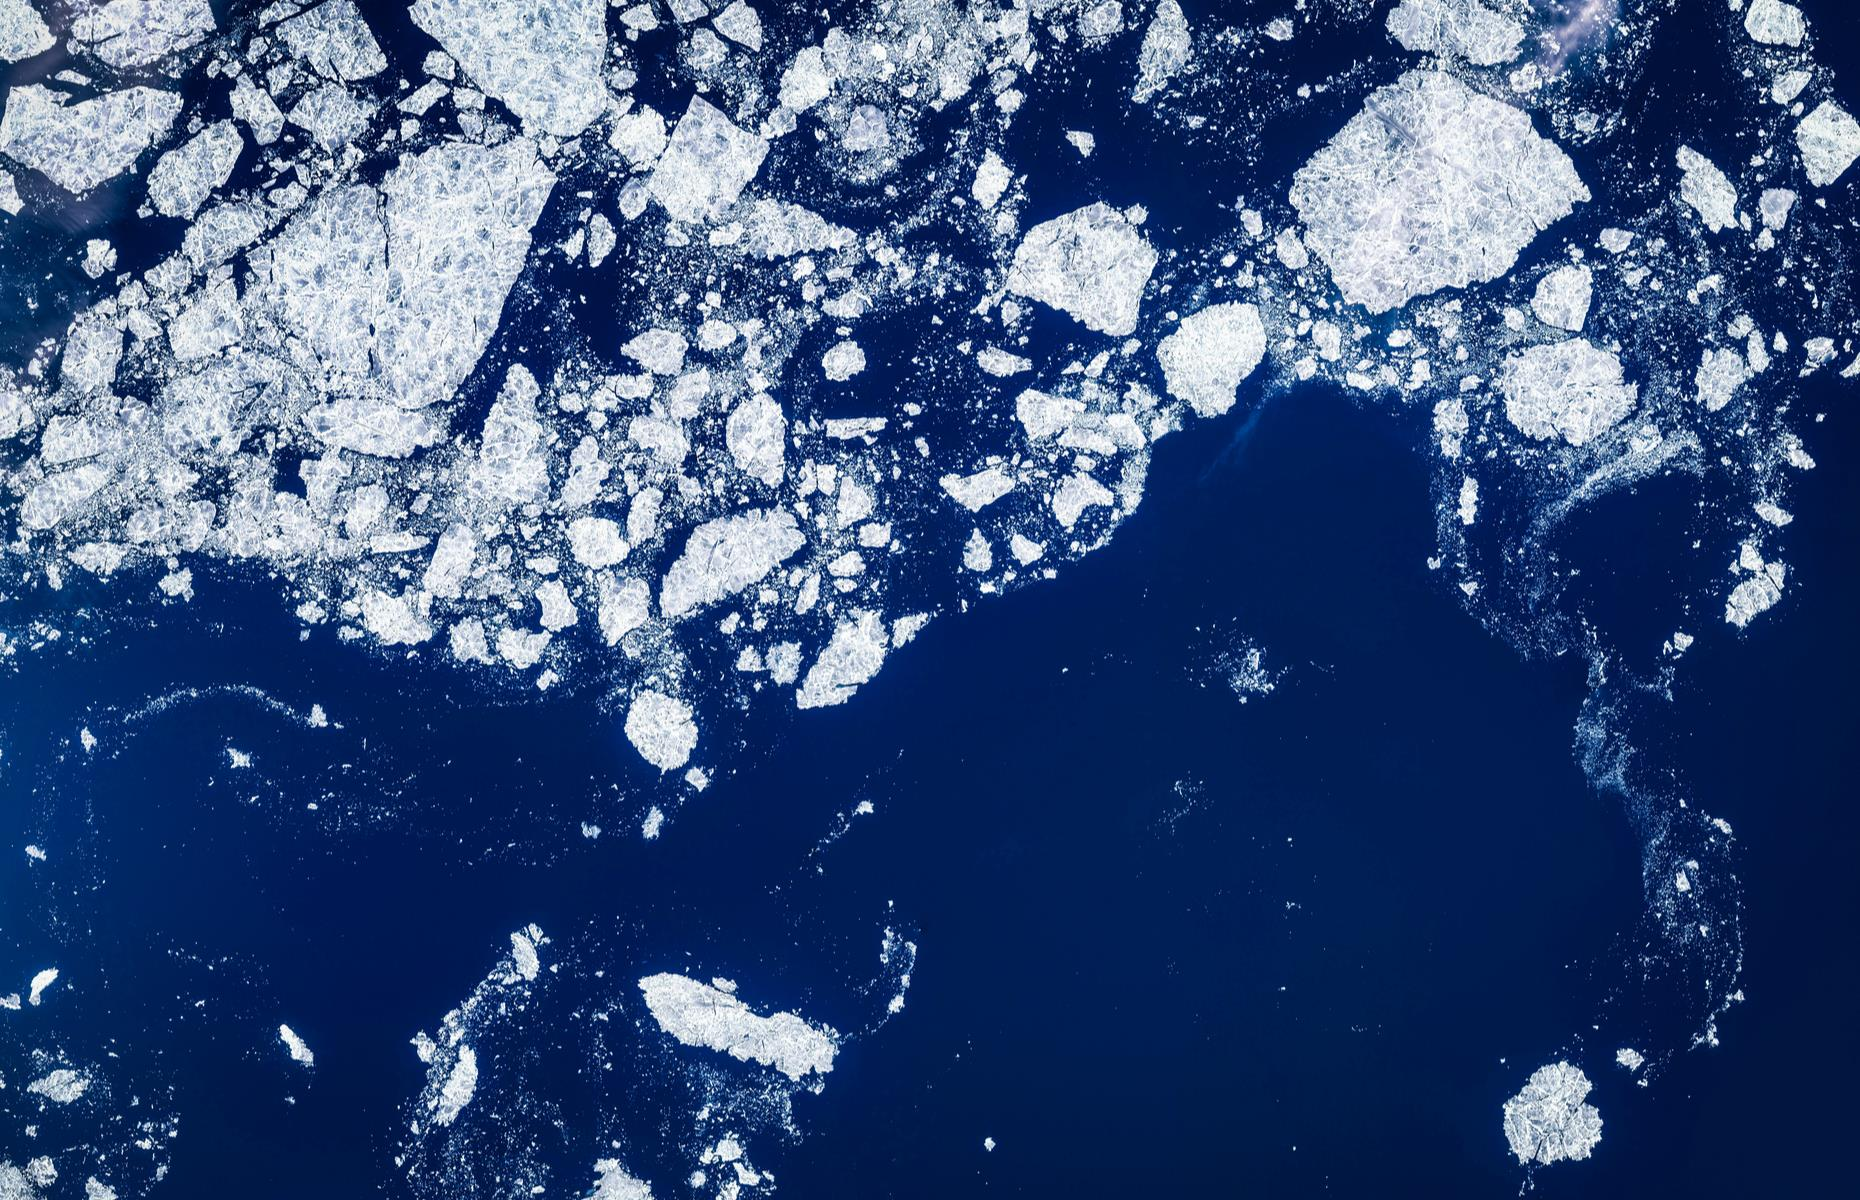 Slide 17 of 37: On the margins of the Arctic Ocean north of Alaska and west of the US state's Arctic islands, this remote sea is frozen solid all year round apart from in August and September. During these months, the ice around the coast cracks to reveal strips of water scattered with bergs and floes.